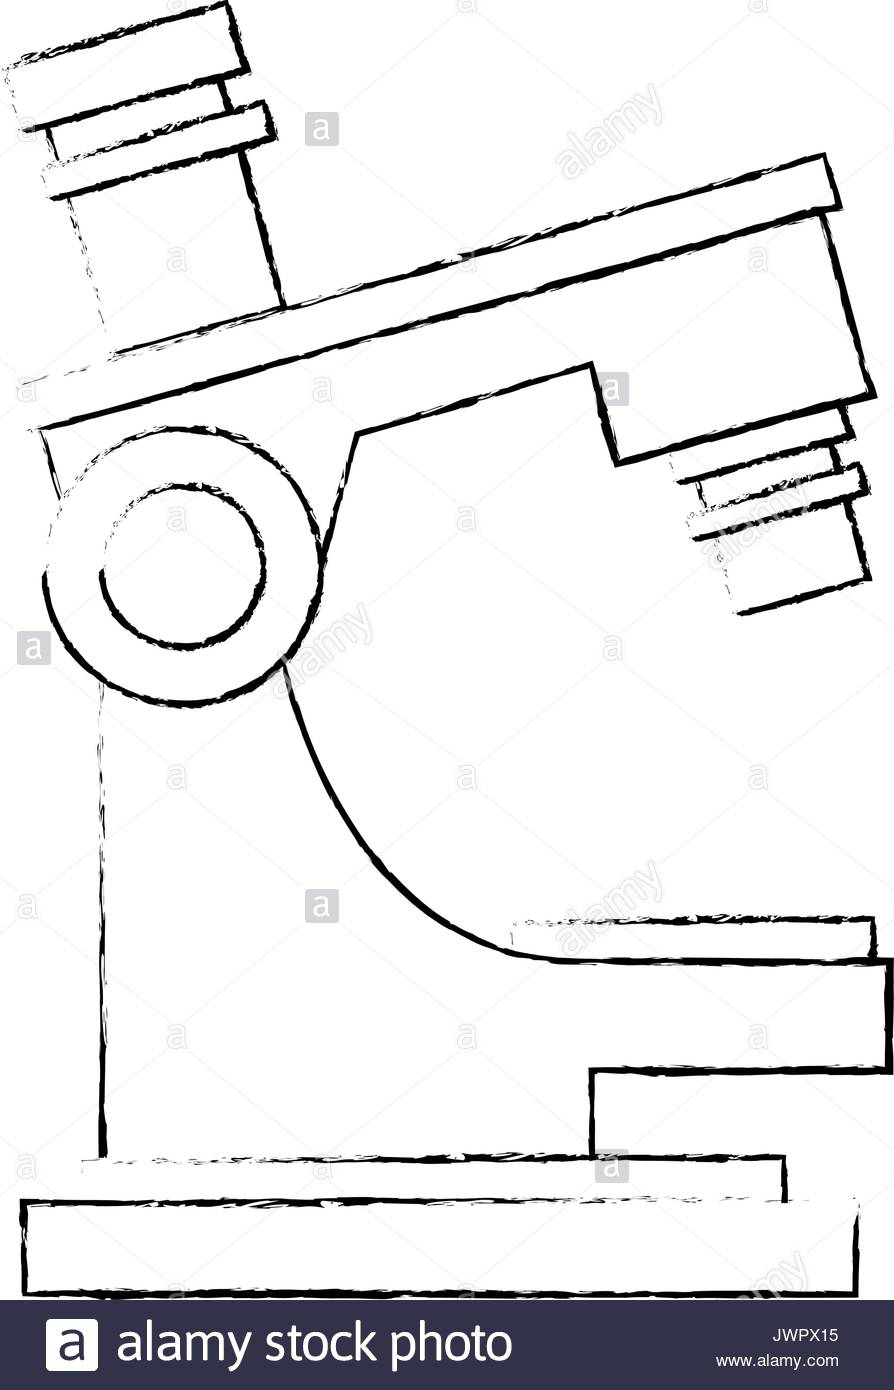 894x1390 Laboratory Microscope Sketch Stock Photos Amp Laboratory Microscope